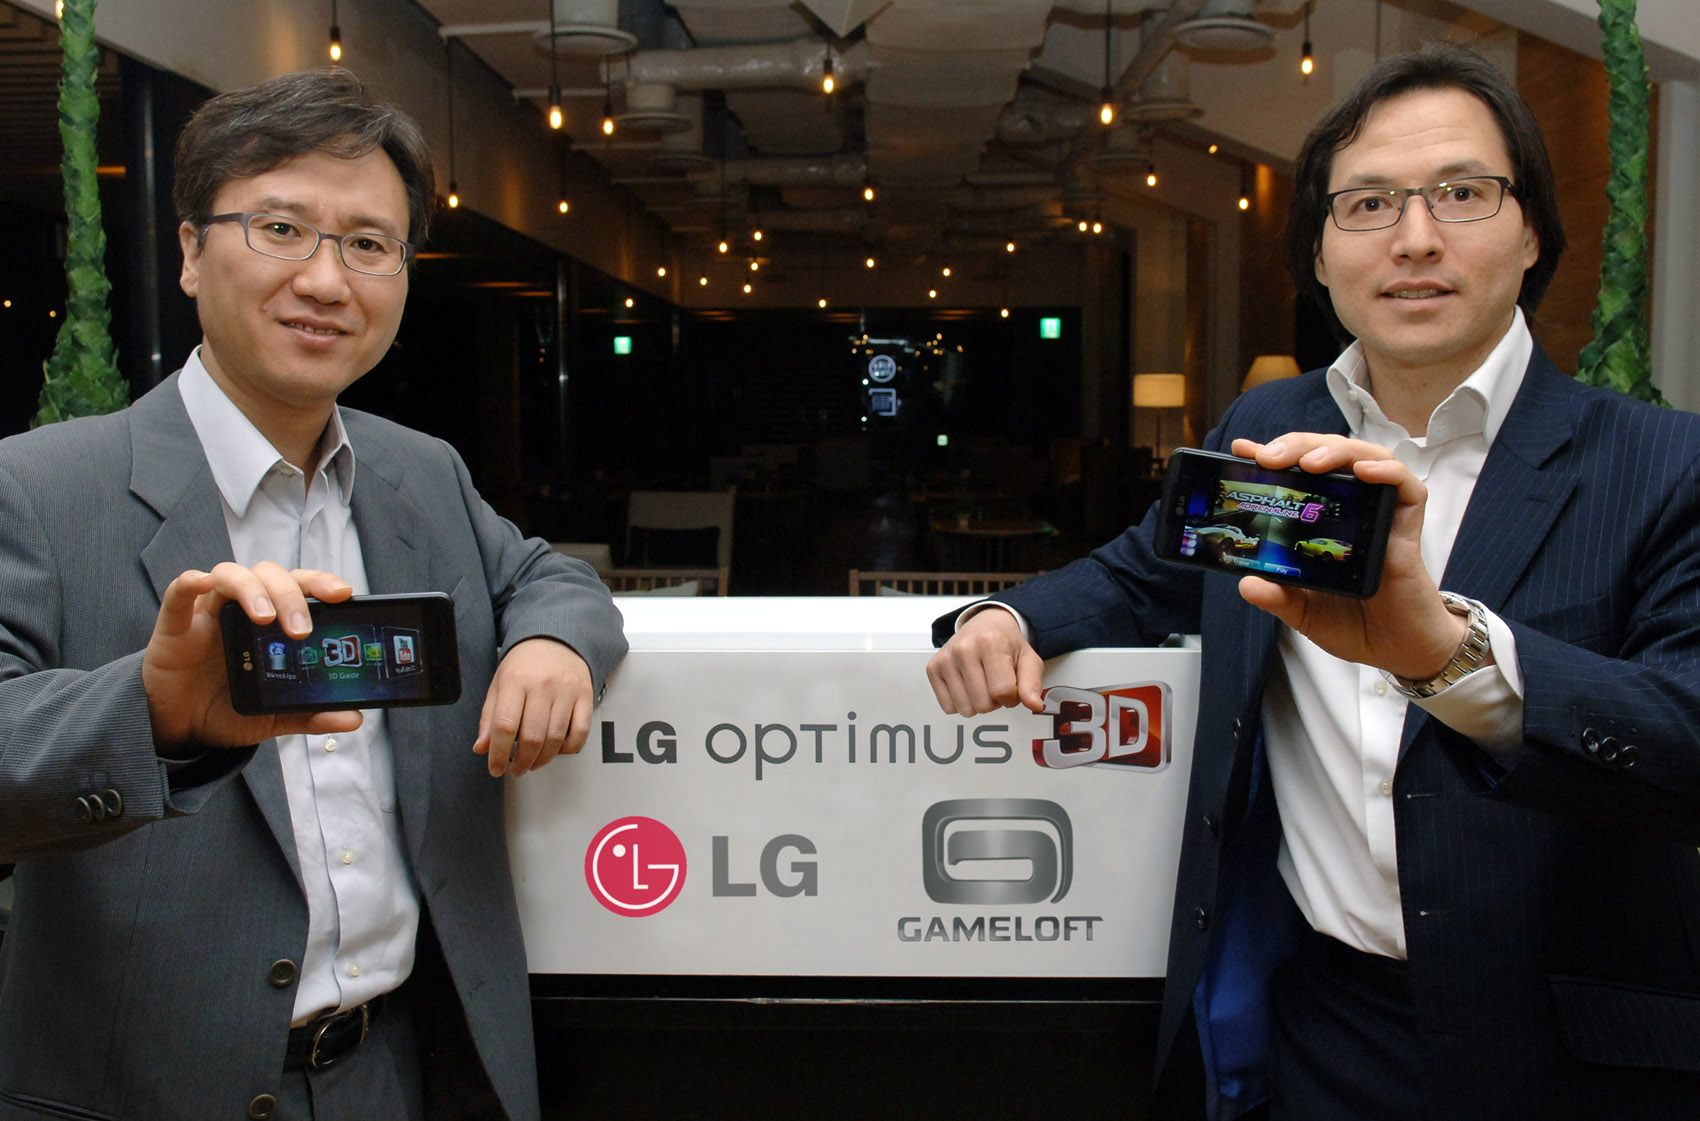 LG JOINS EXPANDING PORTABLE GAMING MARKET WITH OPTIMUS 3D AND HIGH QU